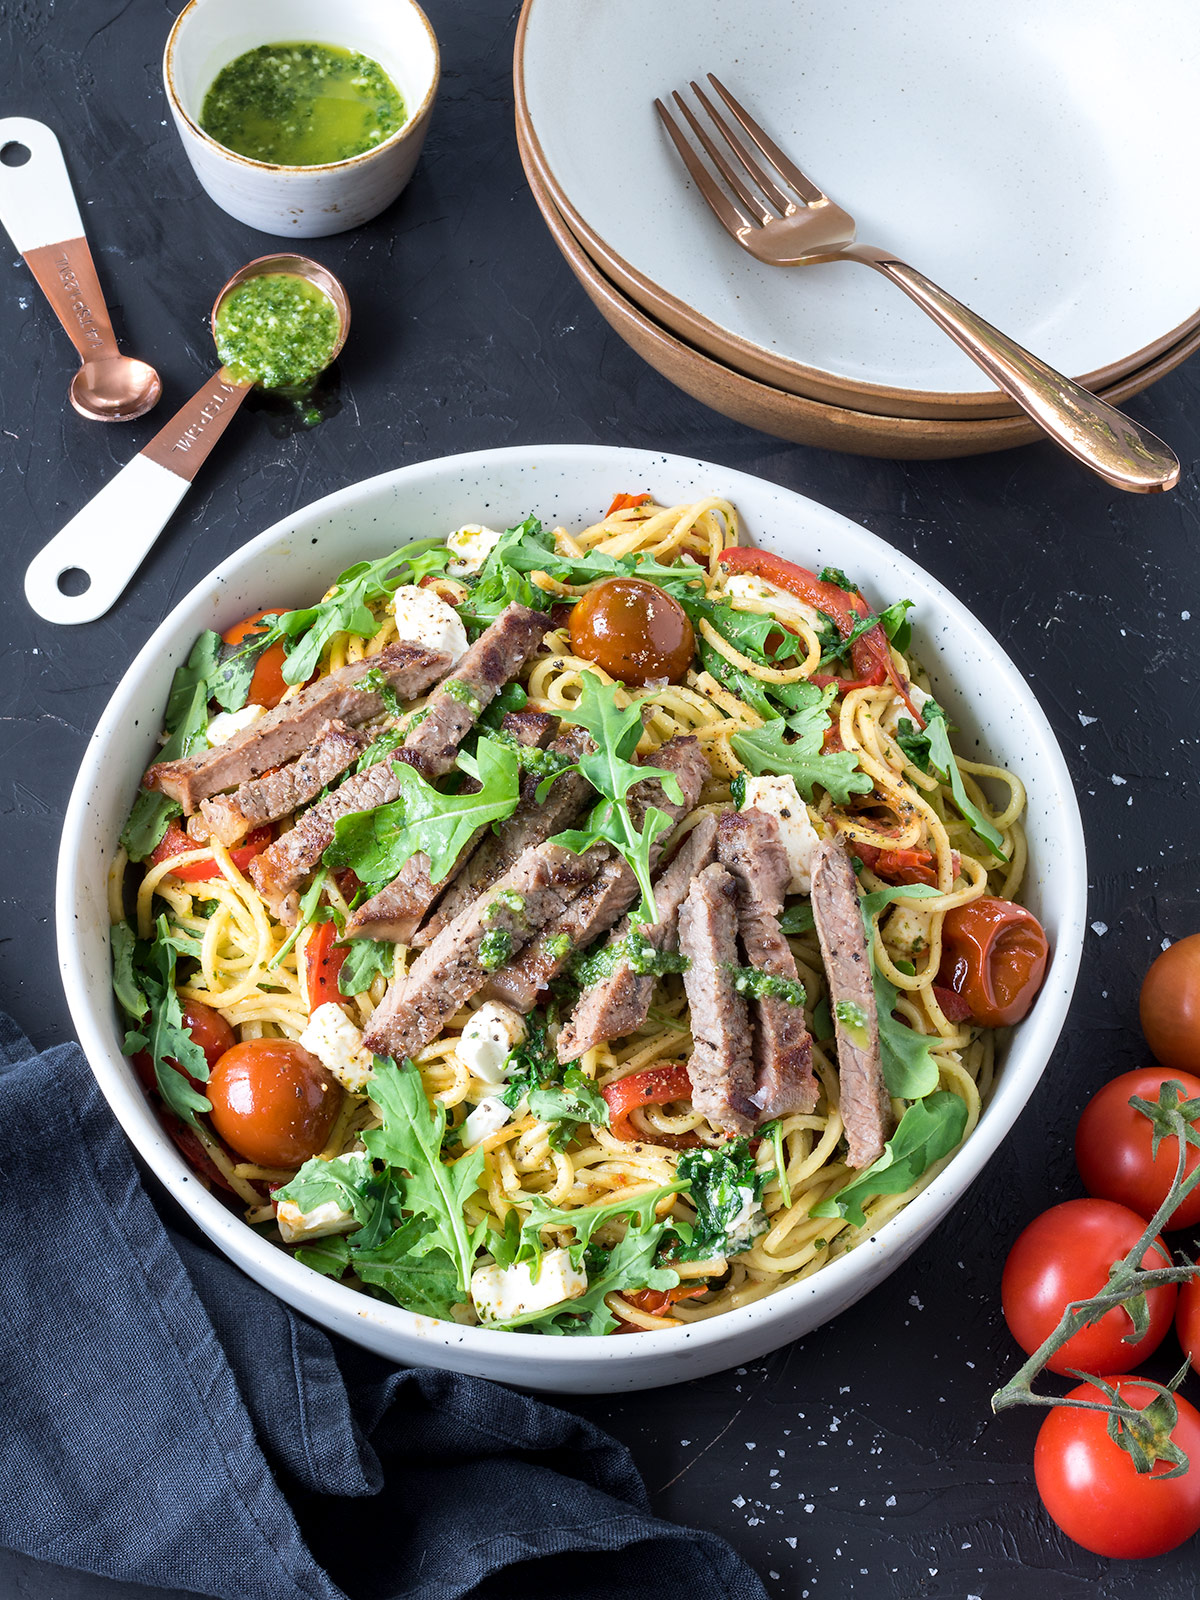 Minimal ingredients, minimal prep time but maximum flavour! This steak and pesto spaghetti is as good as it gets when it comes to easy weeknight meals.